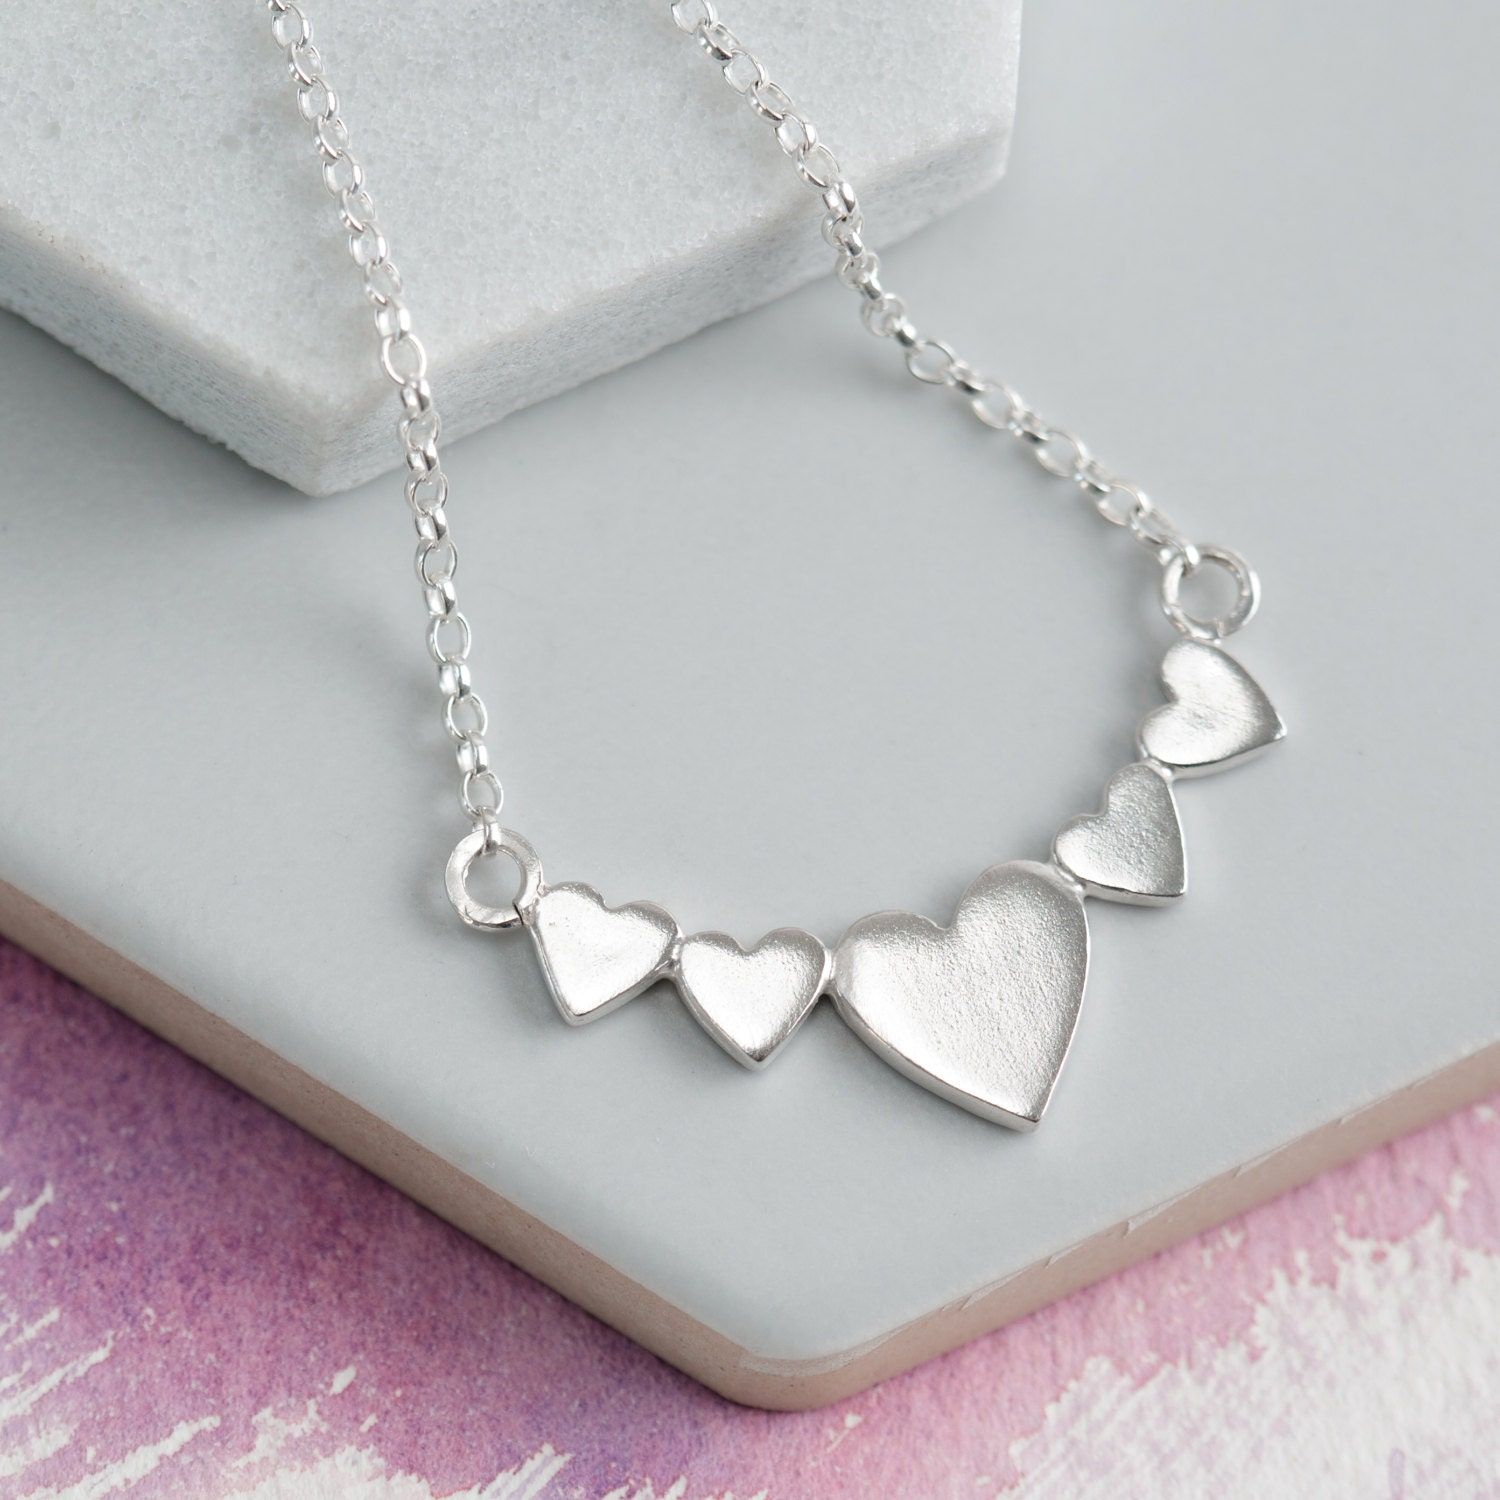 heart necklace  linked hearts jewellery  silver heart necklace  wedding jewellery  mother of 4 jewellery  family jewellery